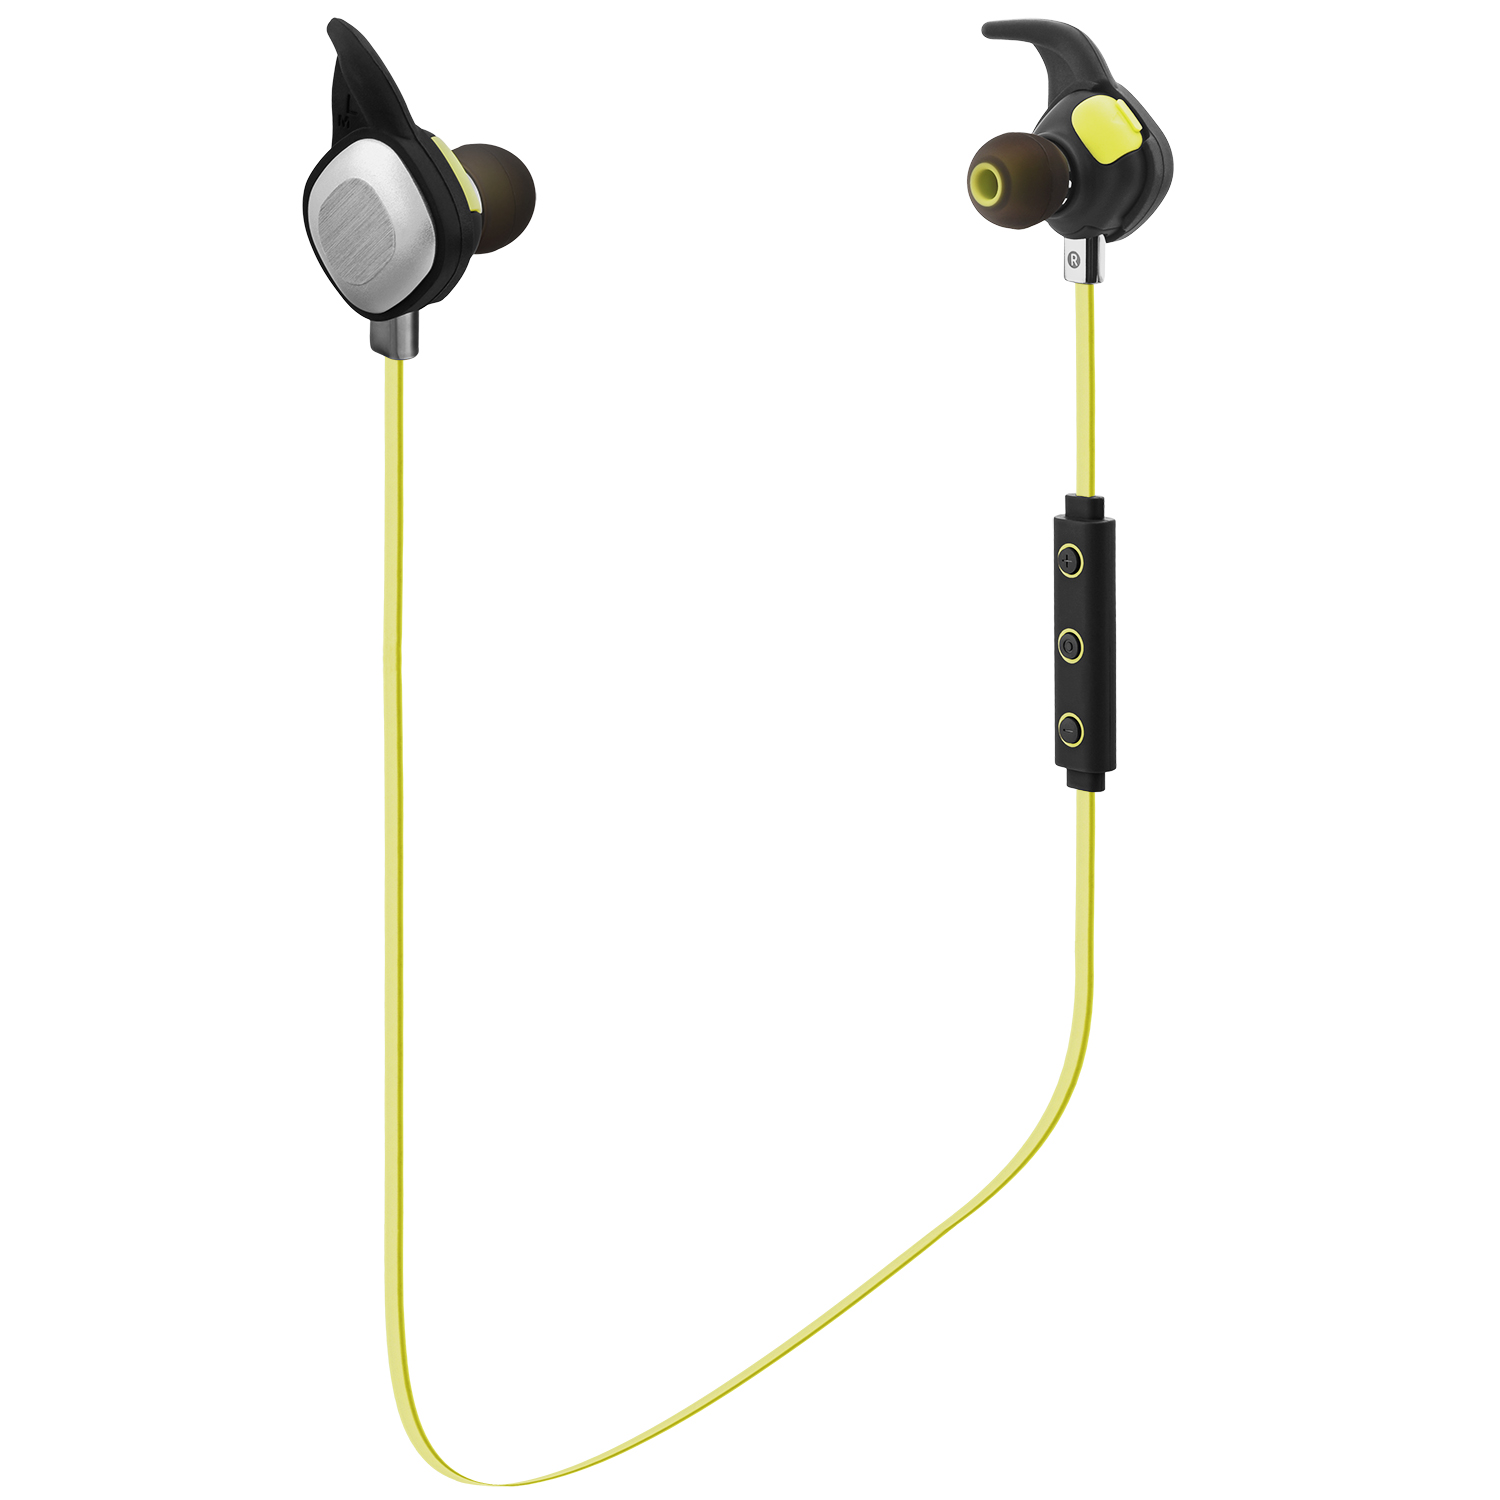 Image for Audiomate Waterproof Bluetooth Headphone from Circuit City